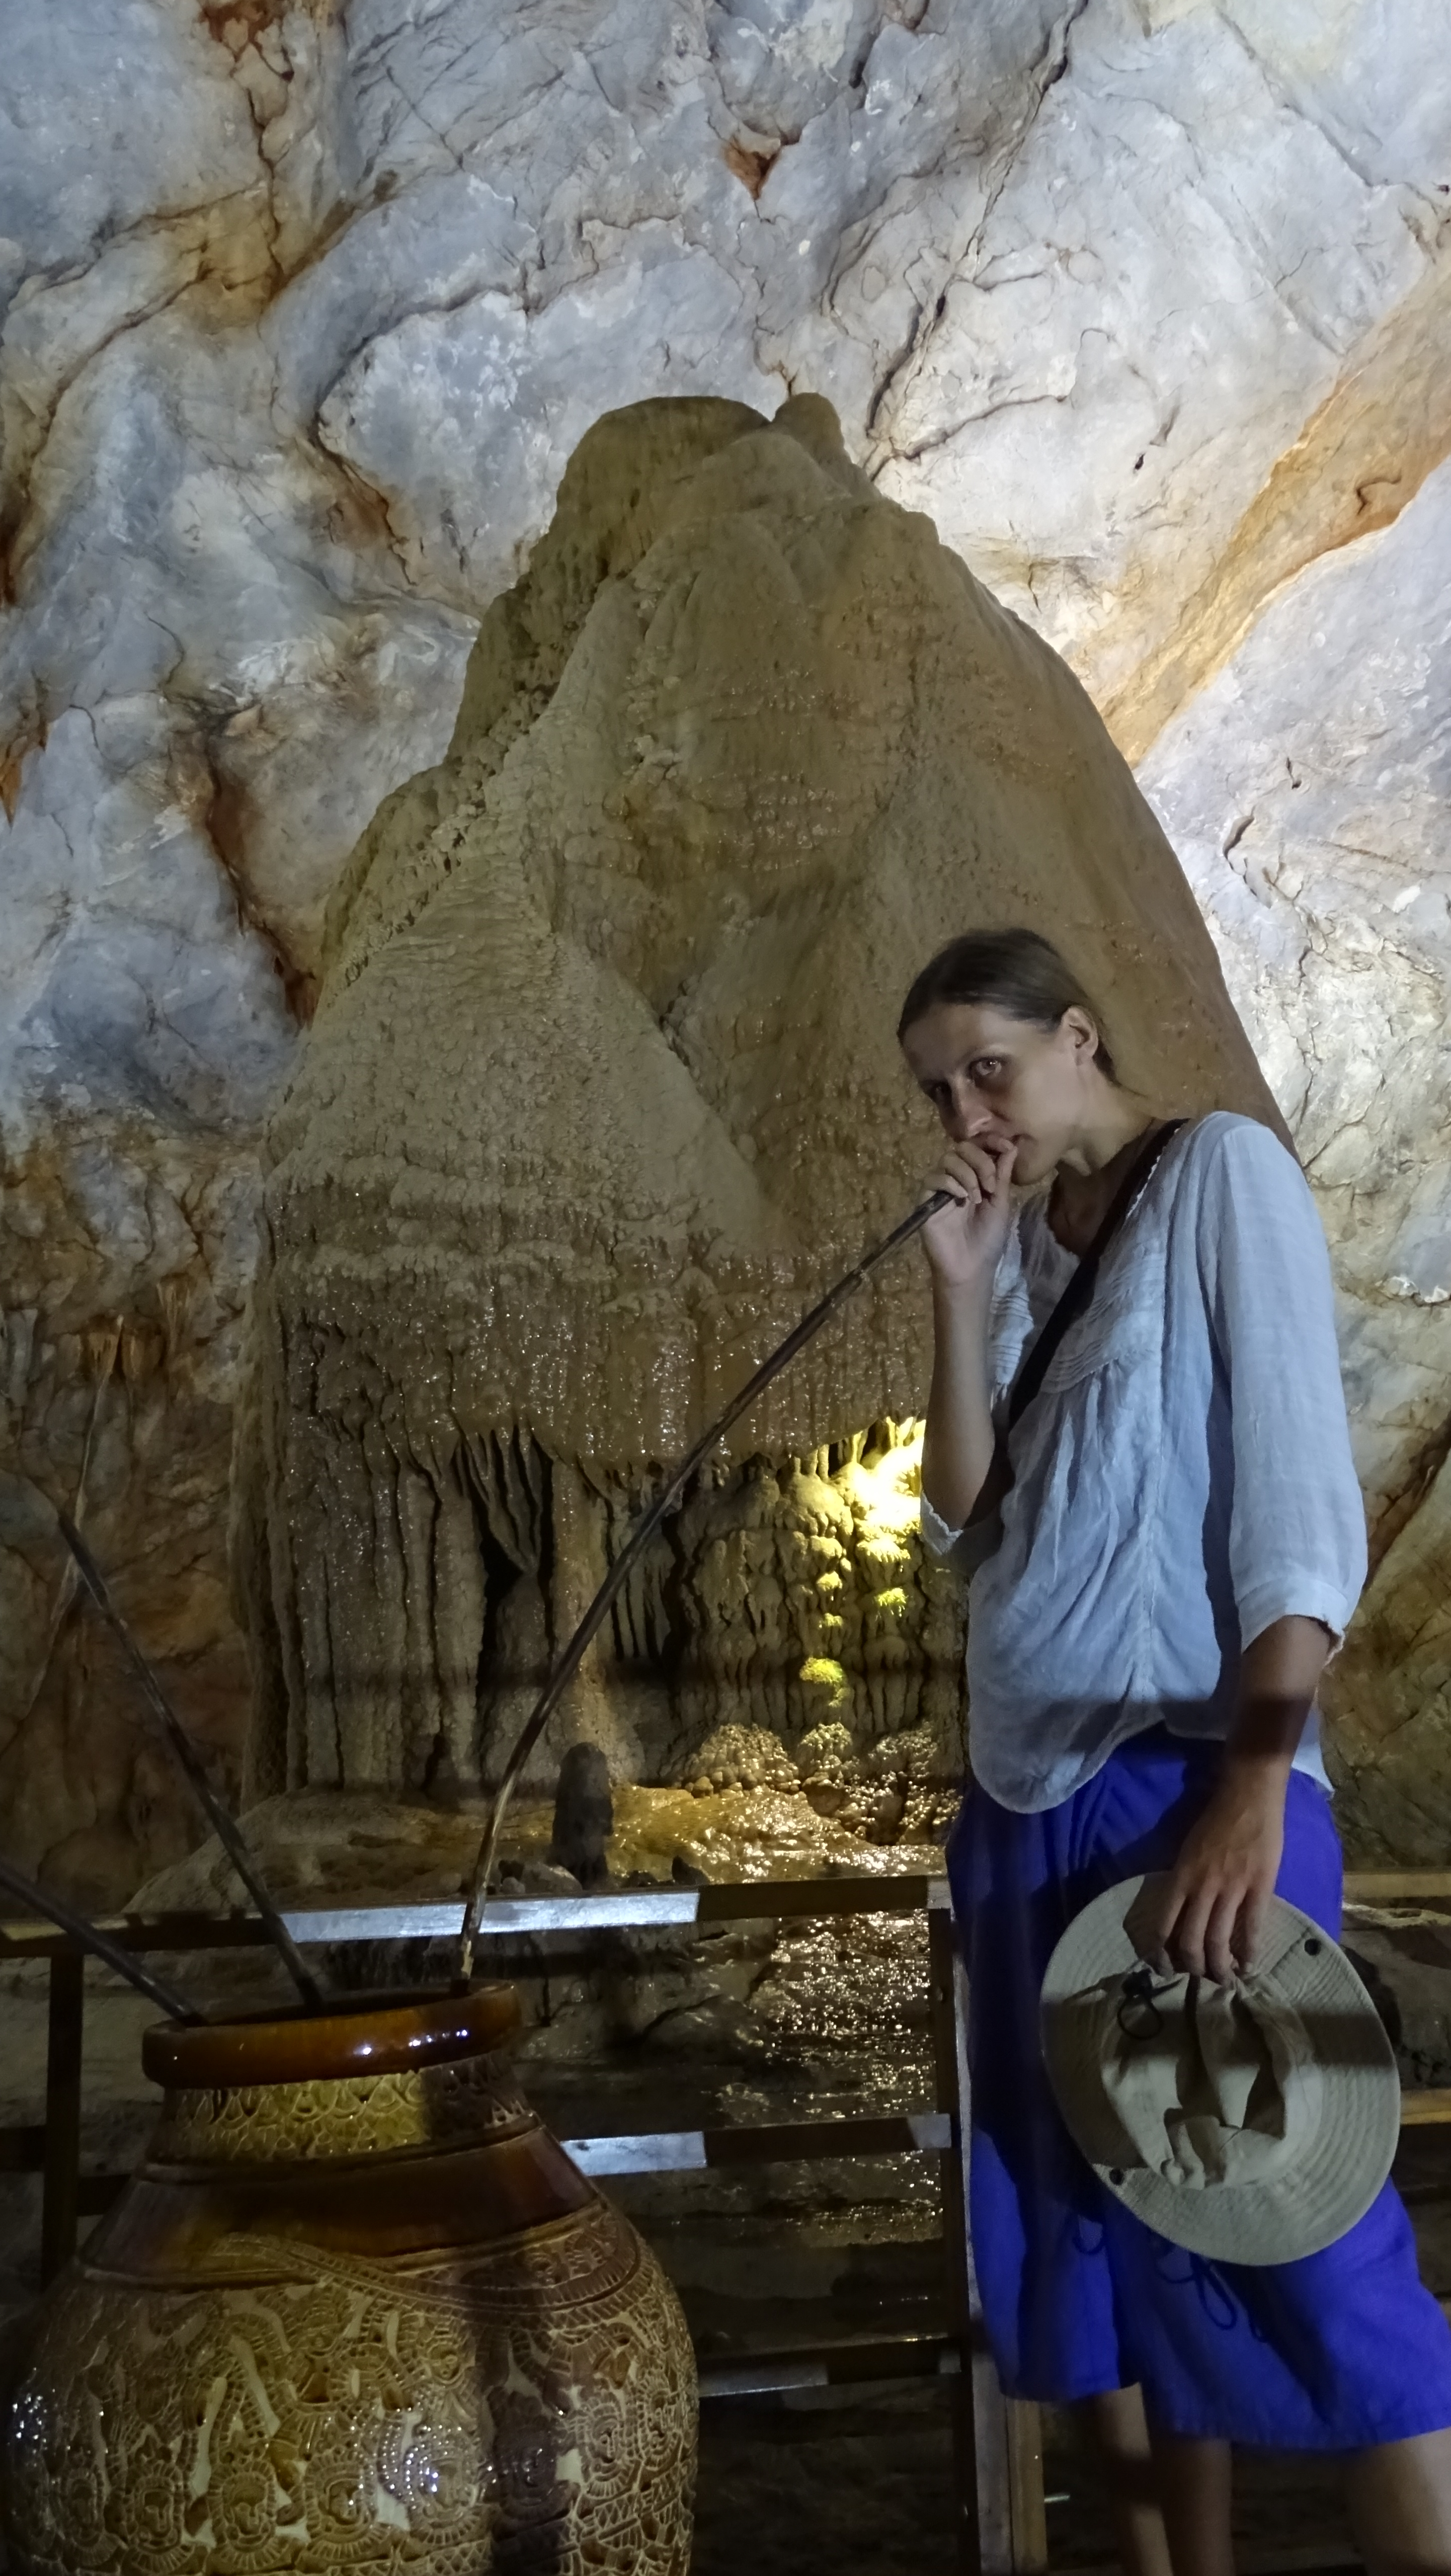 The author pretending to drink  wine from a jar placed in front of a rock formation resembling traditional rong hut inside the Paradise Cave